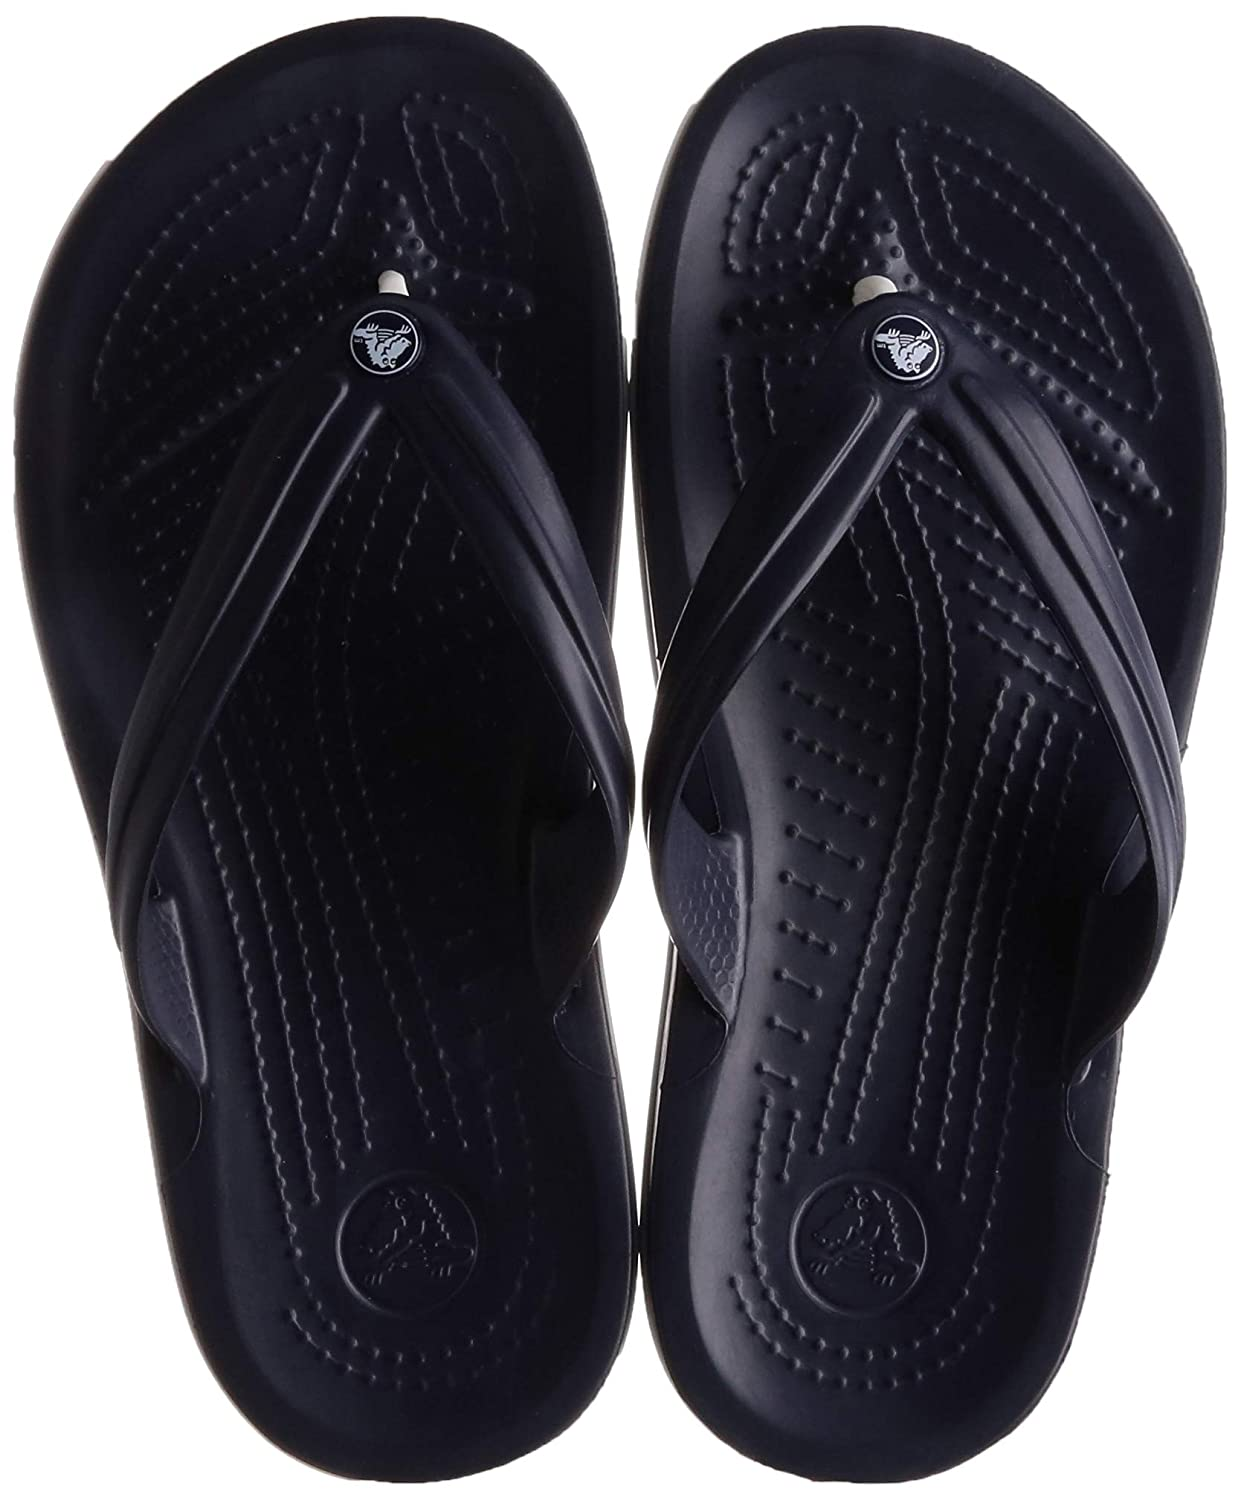 26b1a52e3471 crocs Unisex Crocband Navy Flip Flops and House Slippers  Buy Online at Low  Prices in India - Amazon.in